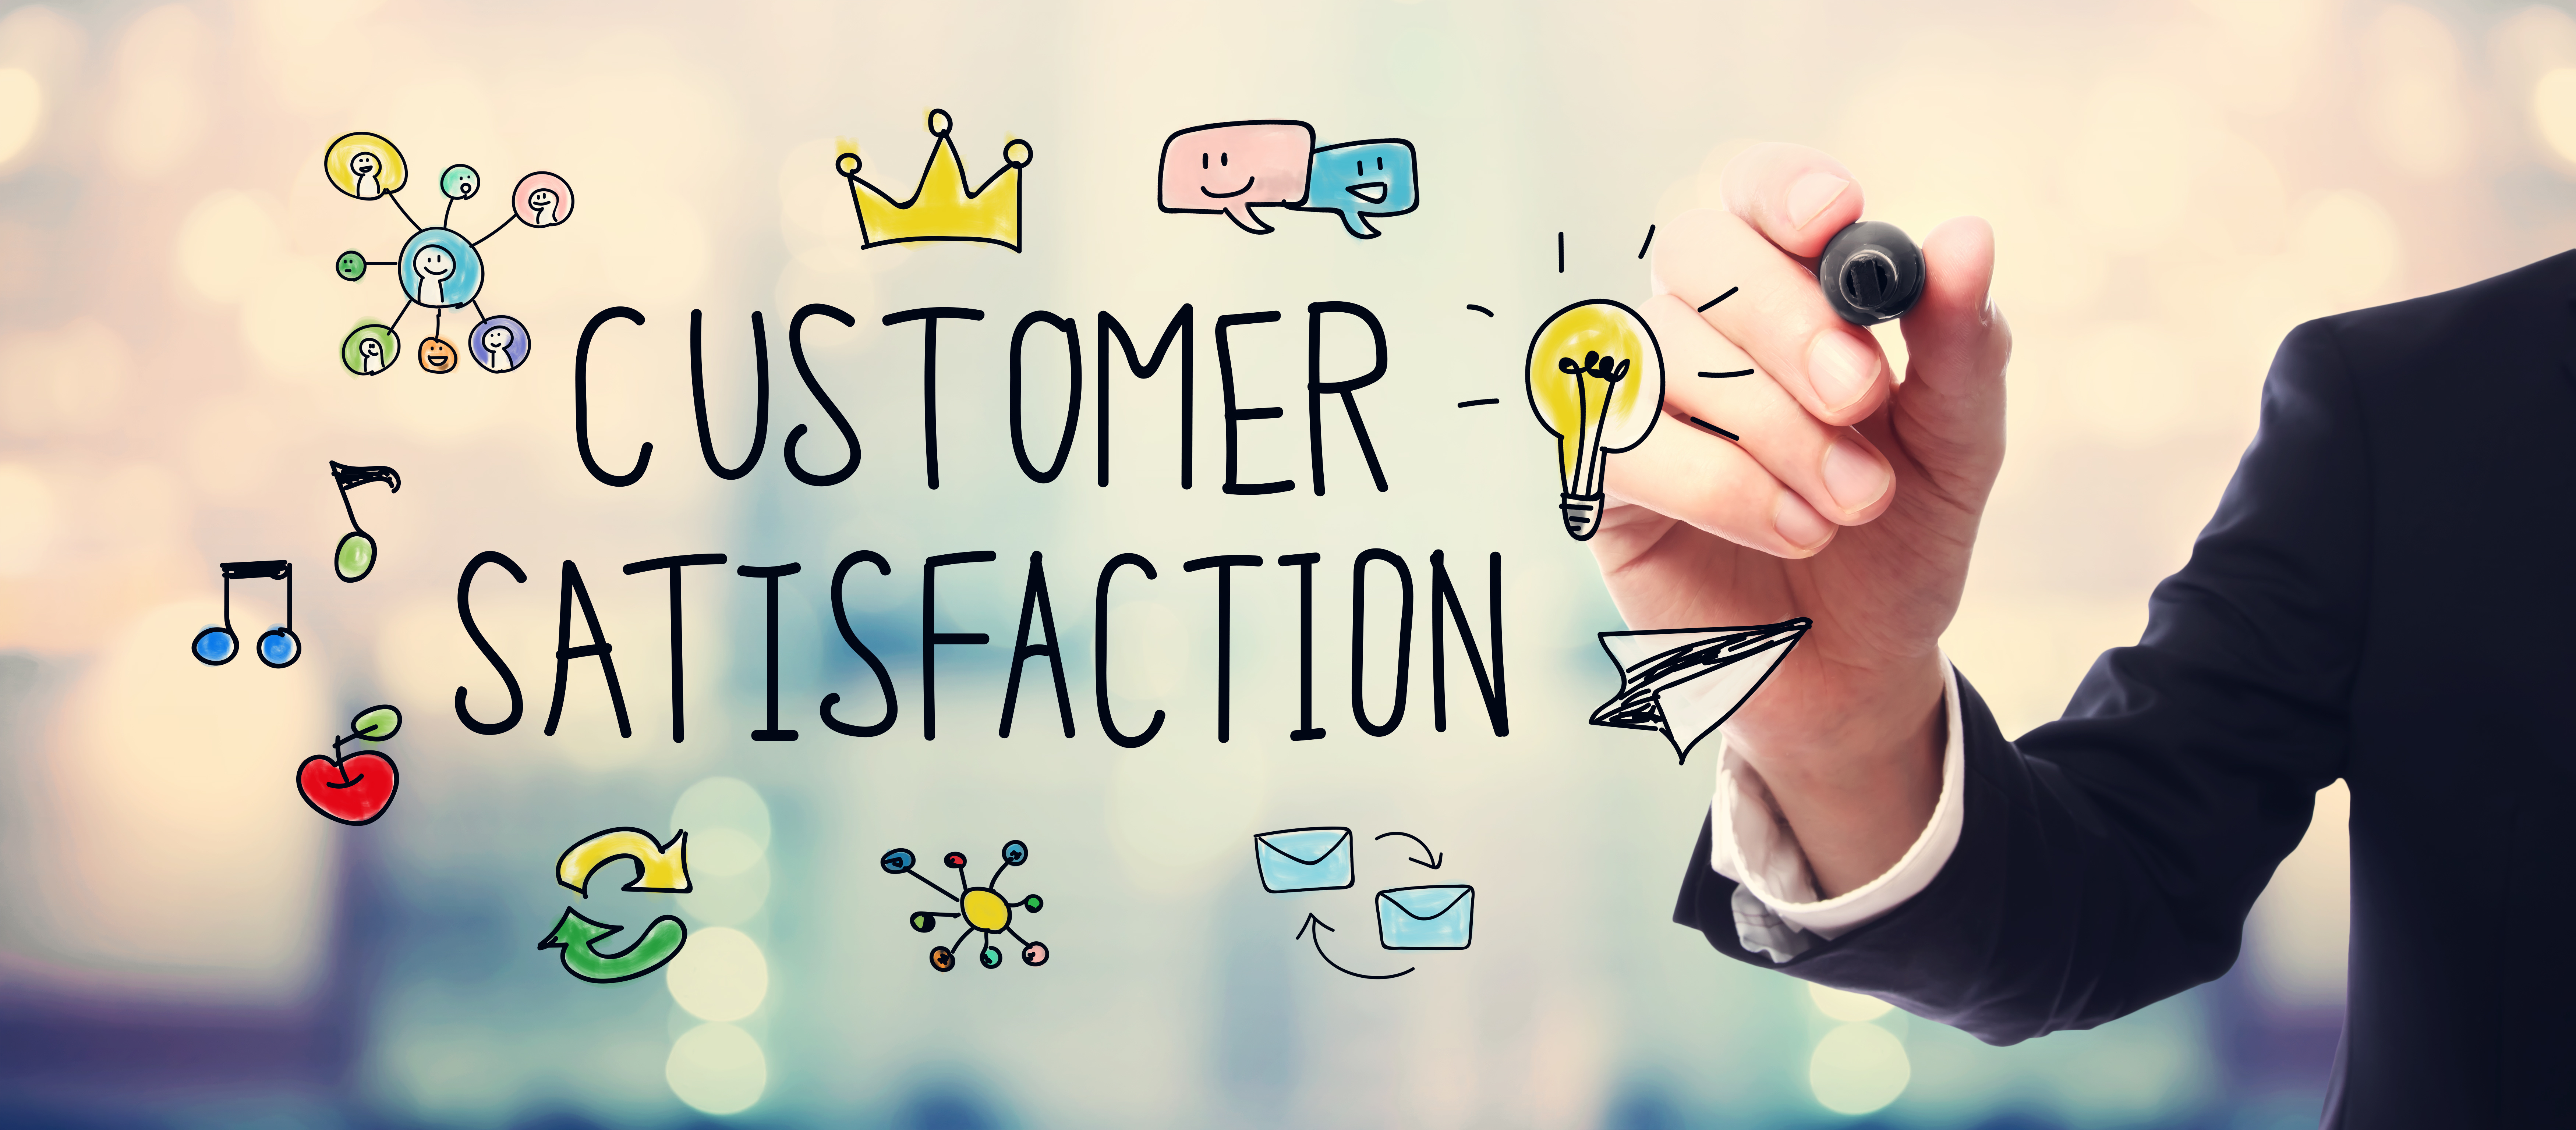 5 Customer Service Trends You Need for 2019